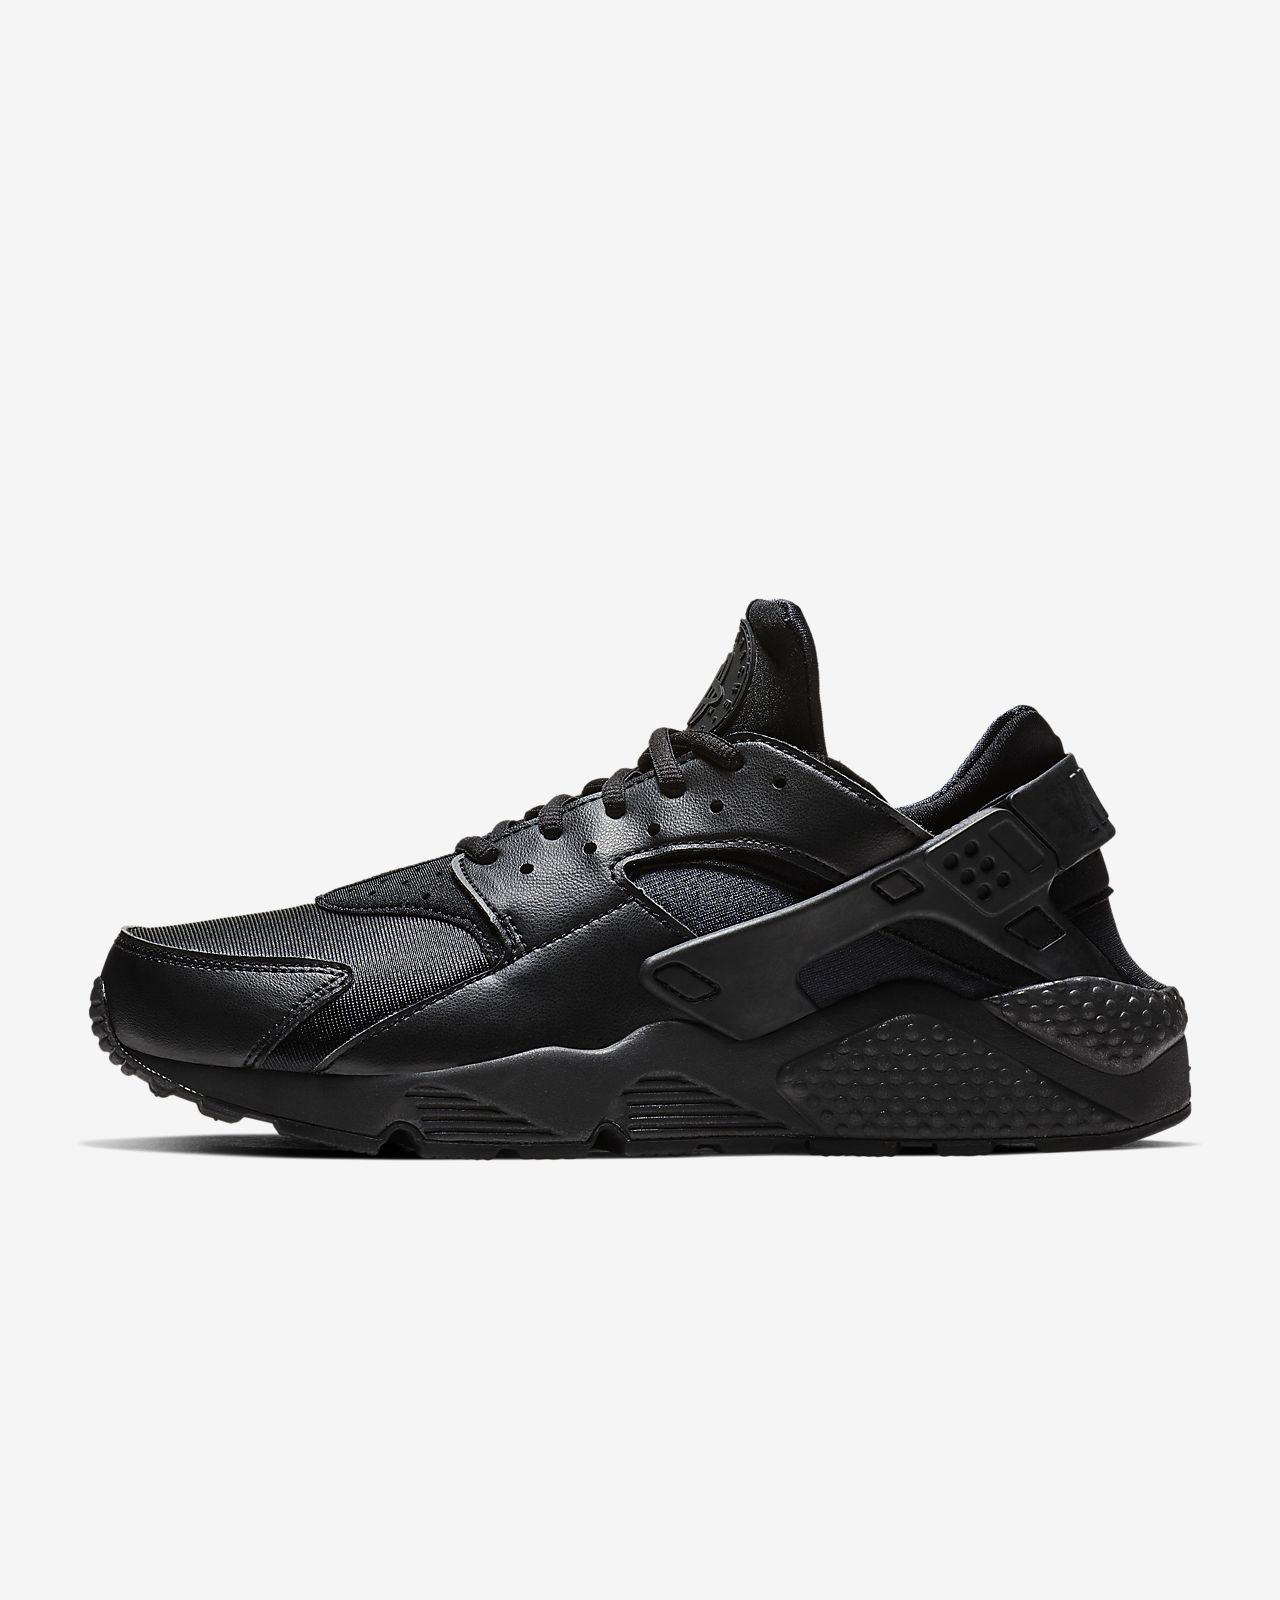 the best attitude 110c8 c09b7 ... Nike Air Huarache Women s Shoe